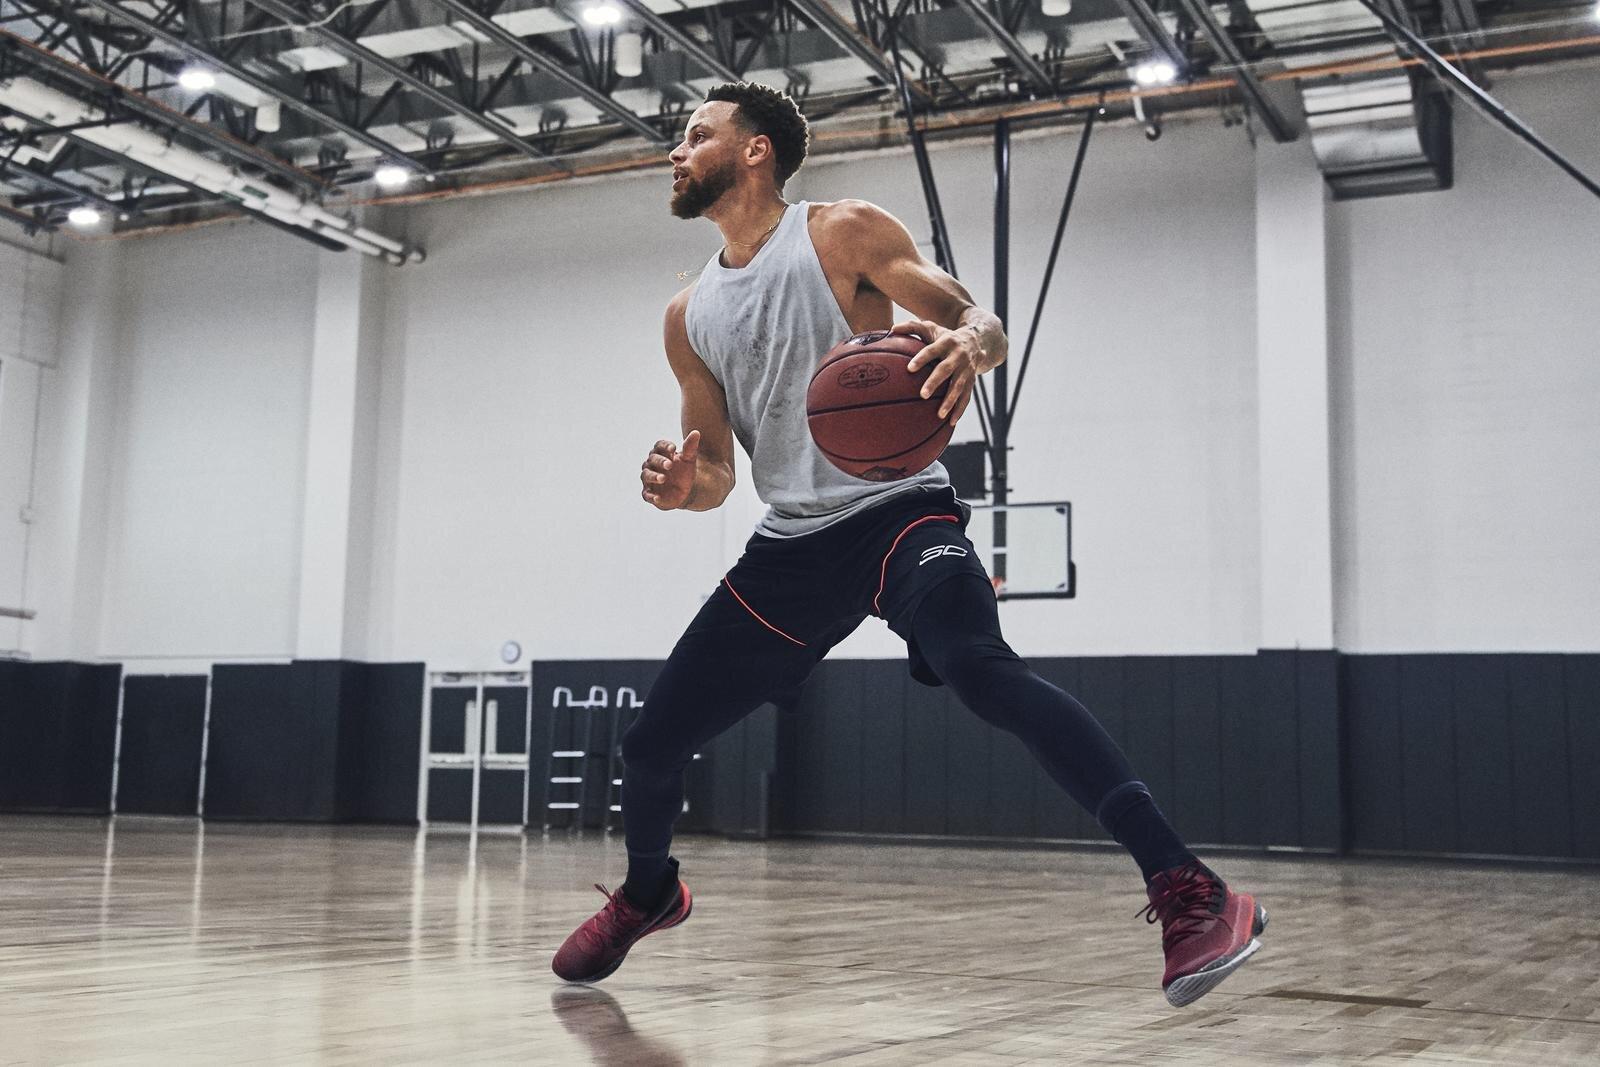 Under Armour Grants Stephen Curry His Own Brand Dribble Media